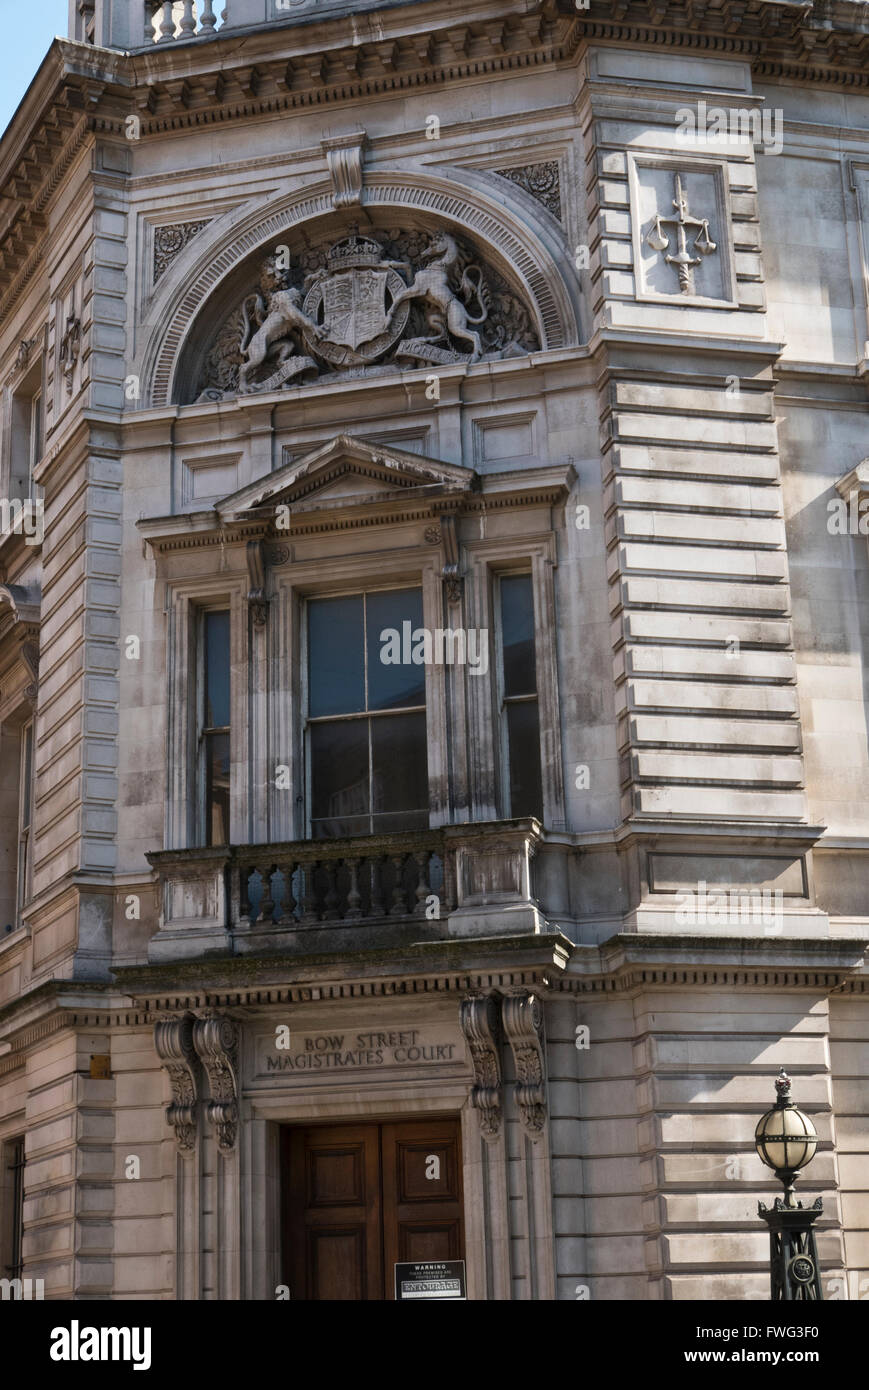 The facade of Bow Magistrate Court in London, United Kingdom. - Stock Image